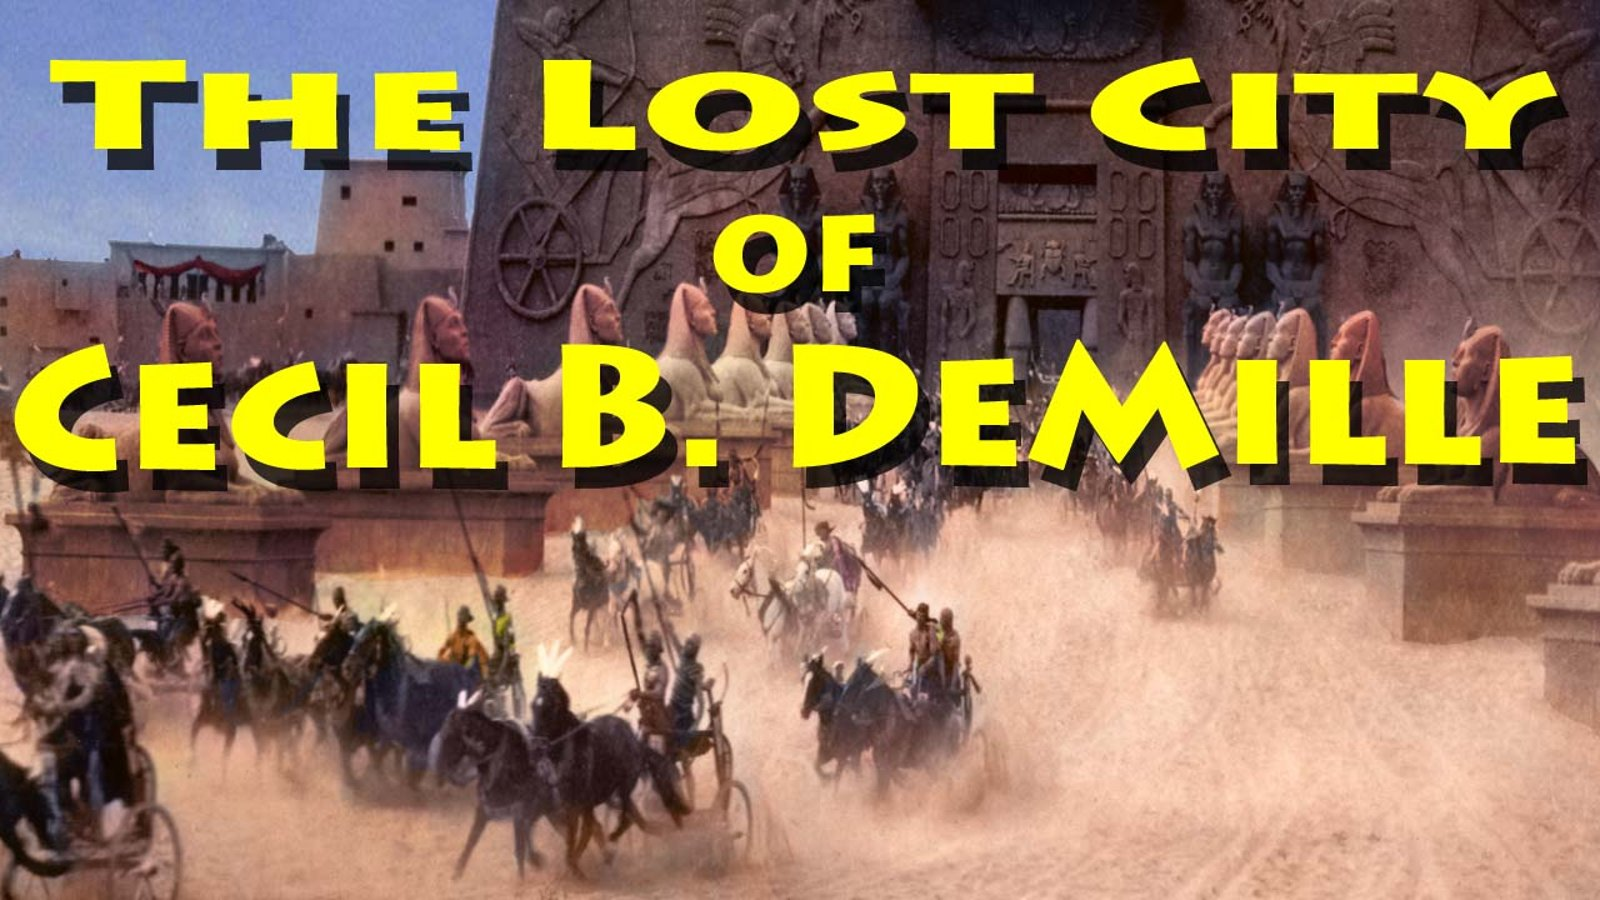 The Lost City of Cecil B. DeMille - A Hollywood Mystery